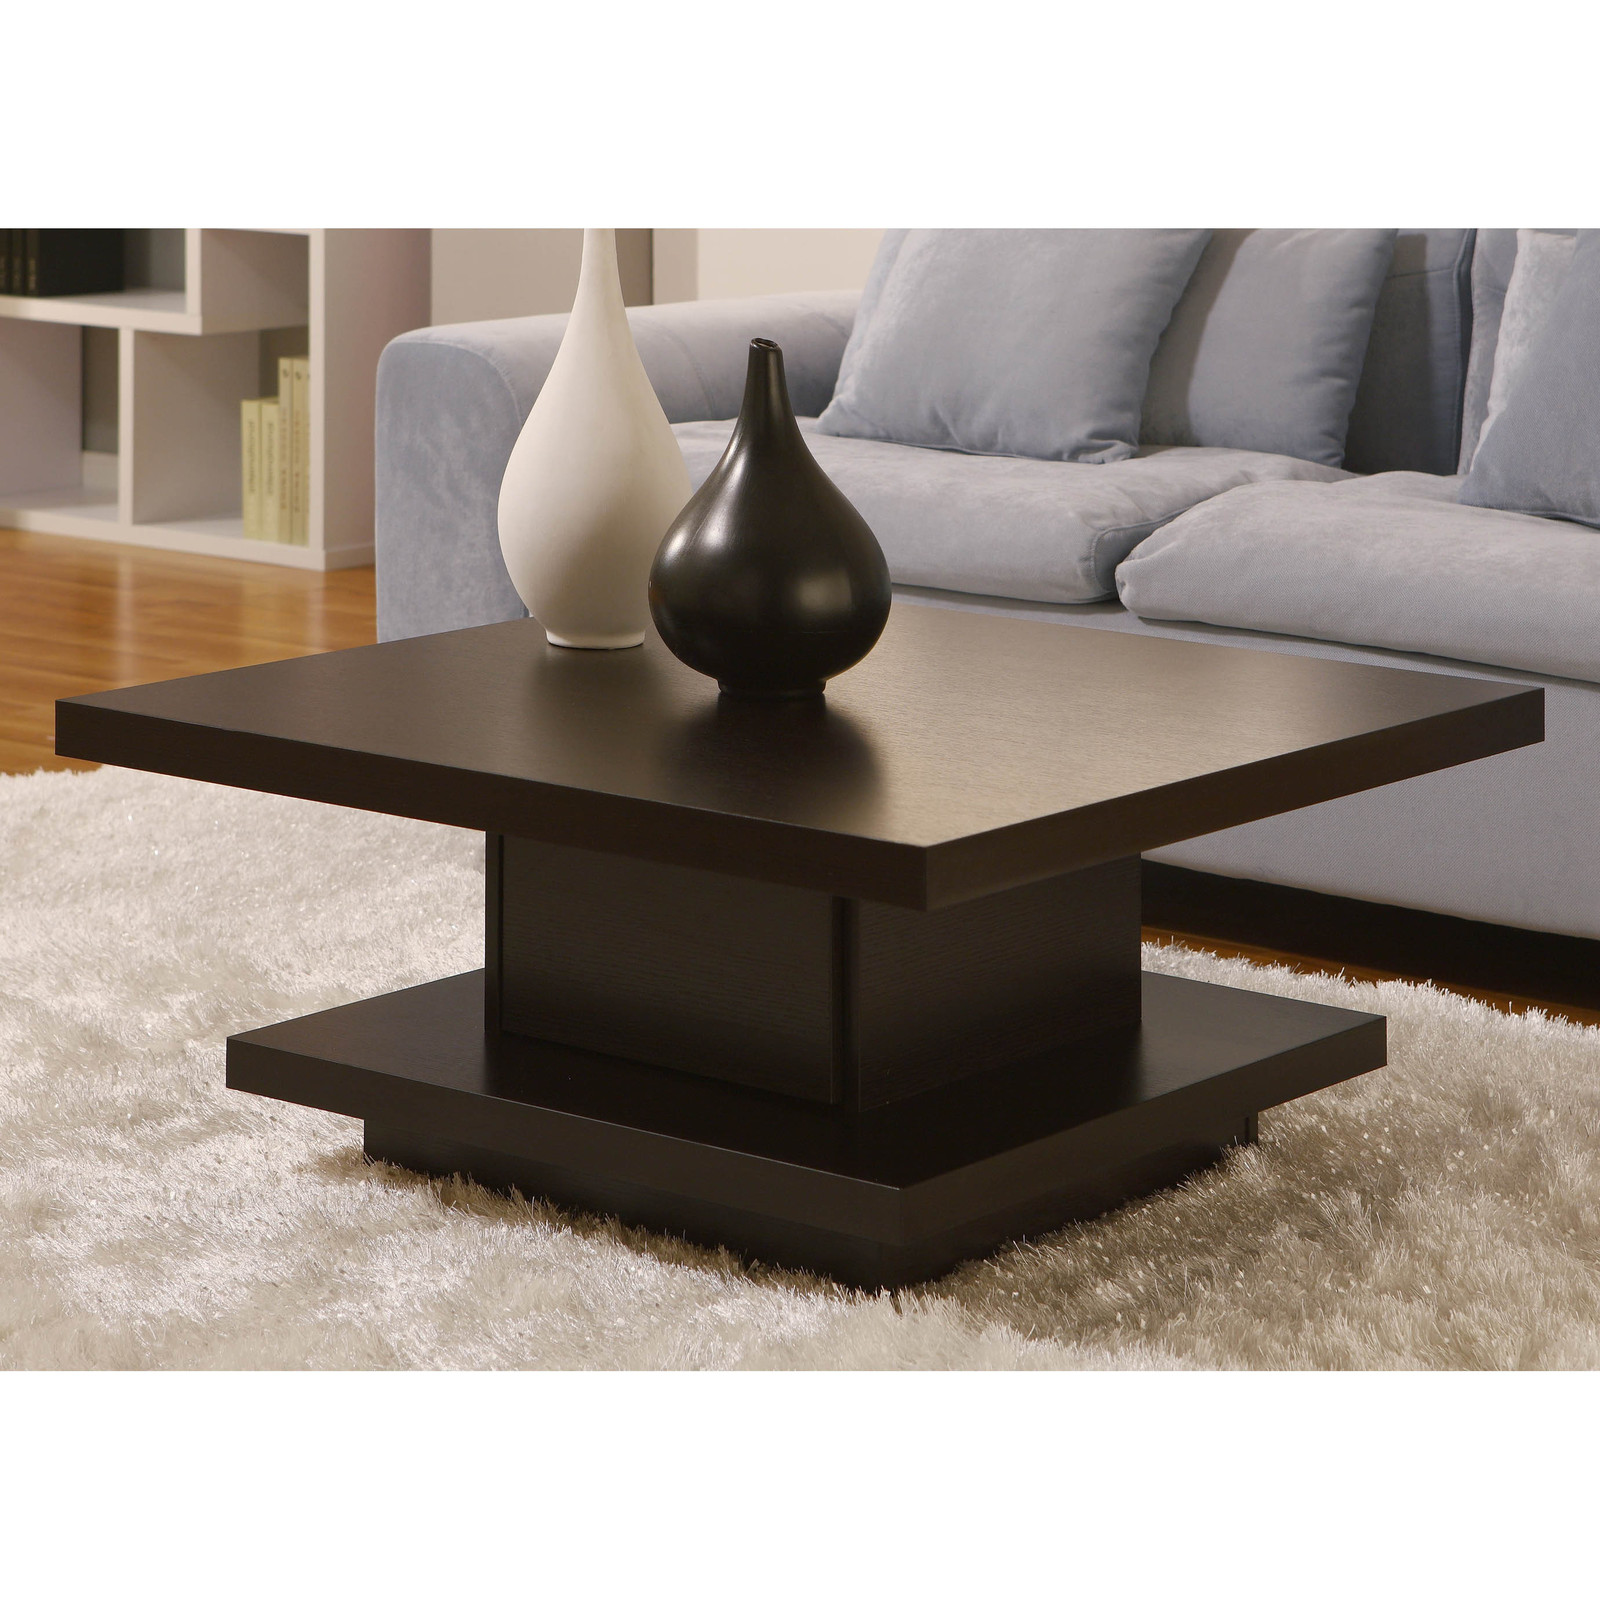 Coffee Table Simple Modern Creative Small Coffee Table: Contemporary Modern Wood Coffee Tables Unique Square Style